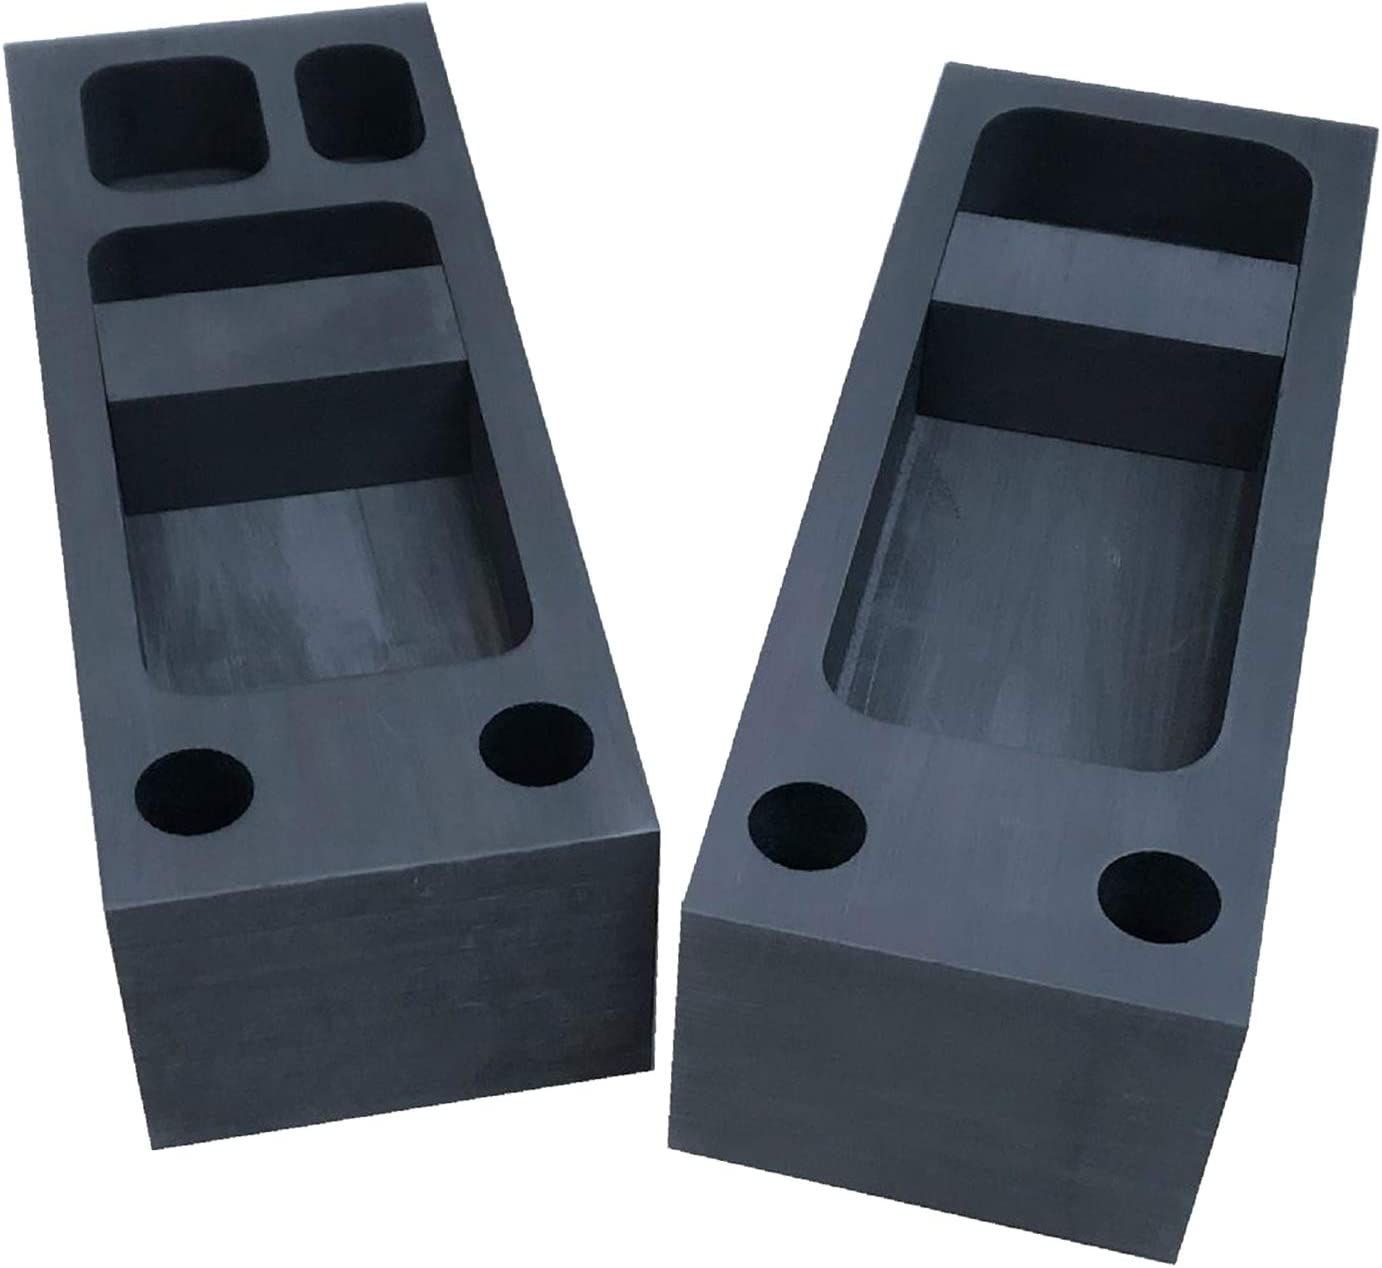 lahomia Set of 2 Ingot Molds Graphite Crucible Set in Cast Iron